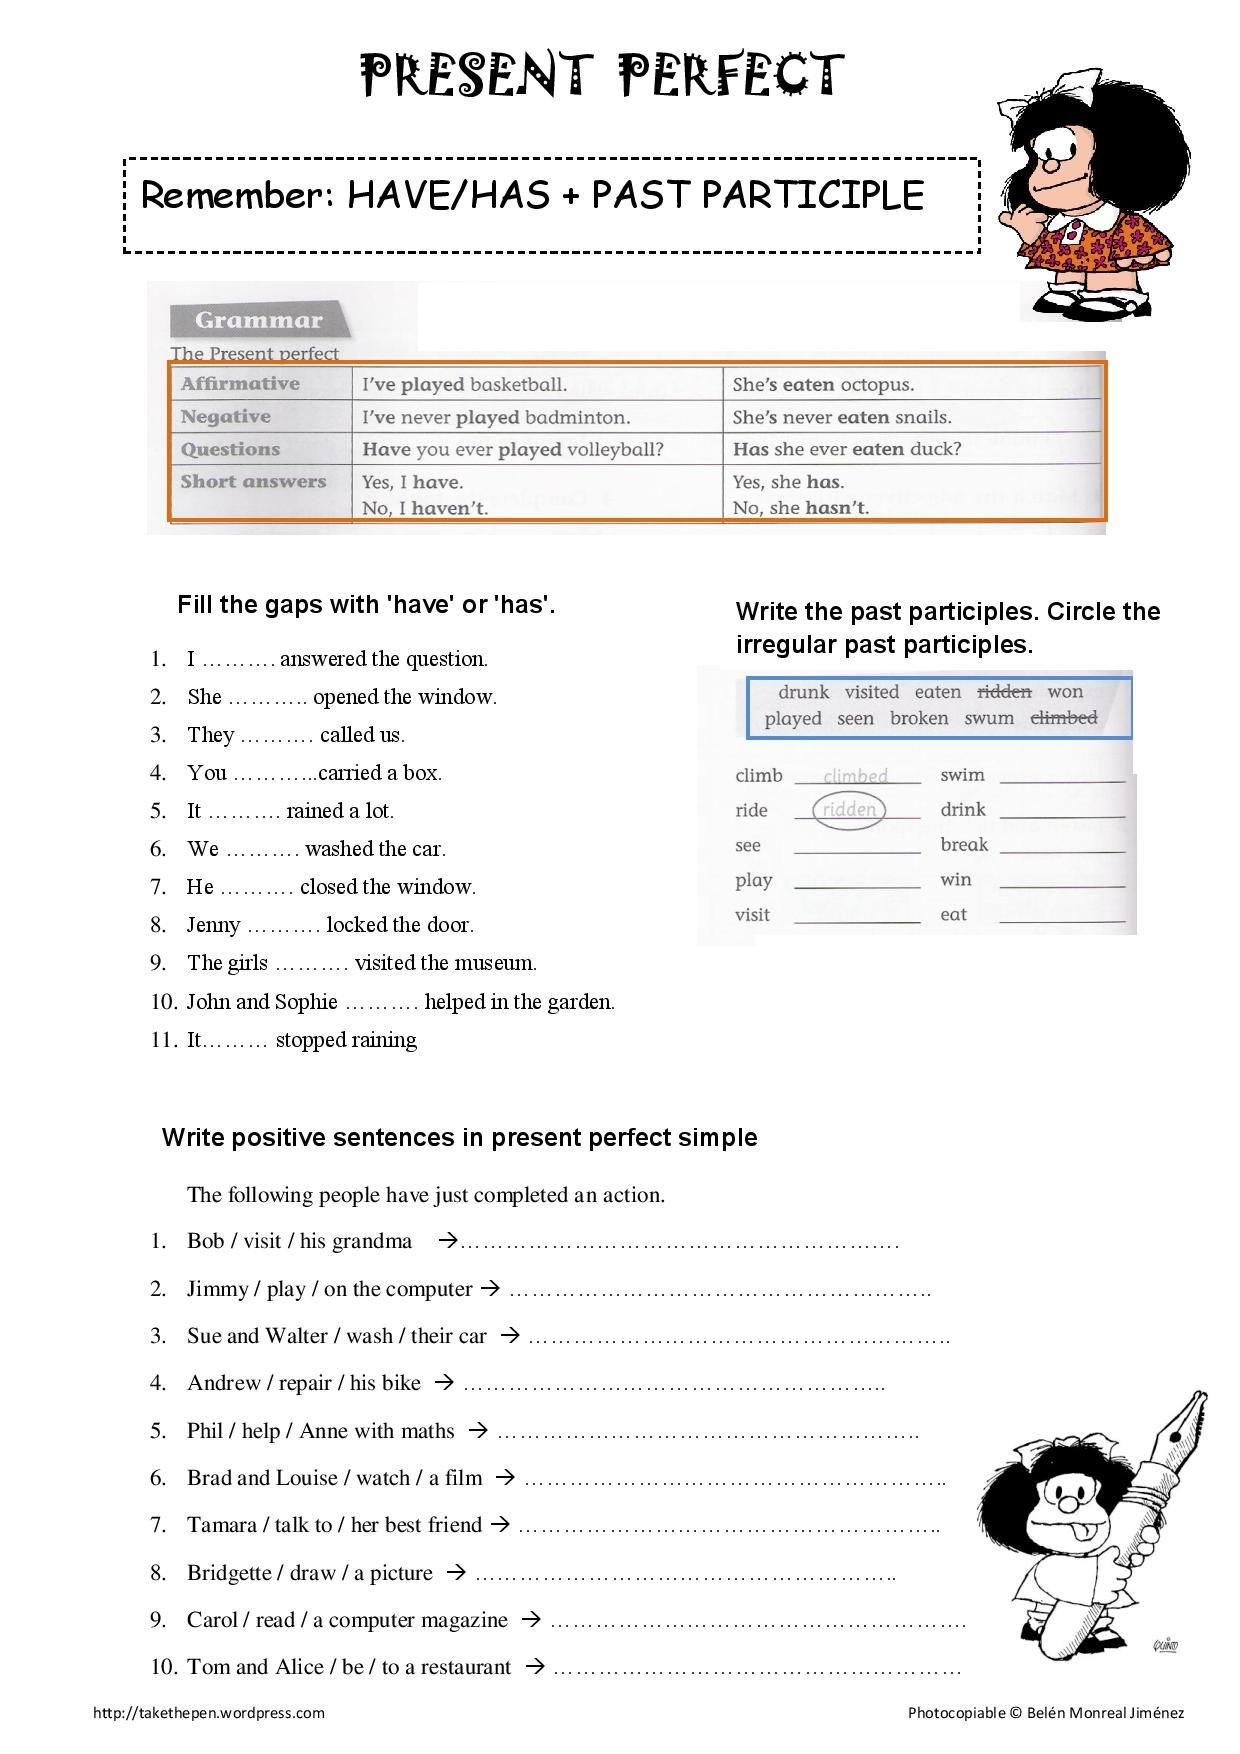 Past perfect worksheet pdf with answers